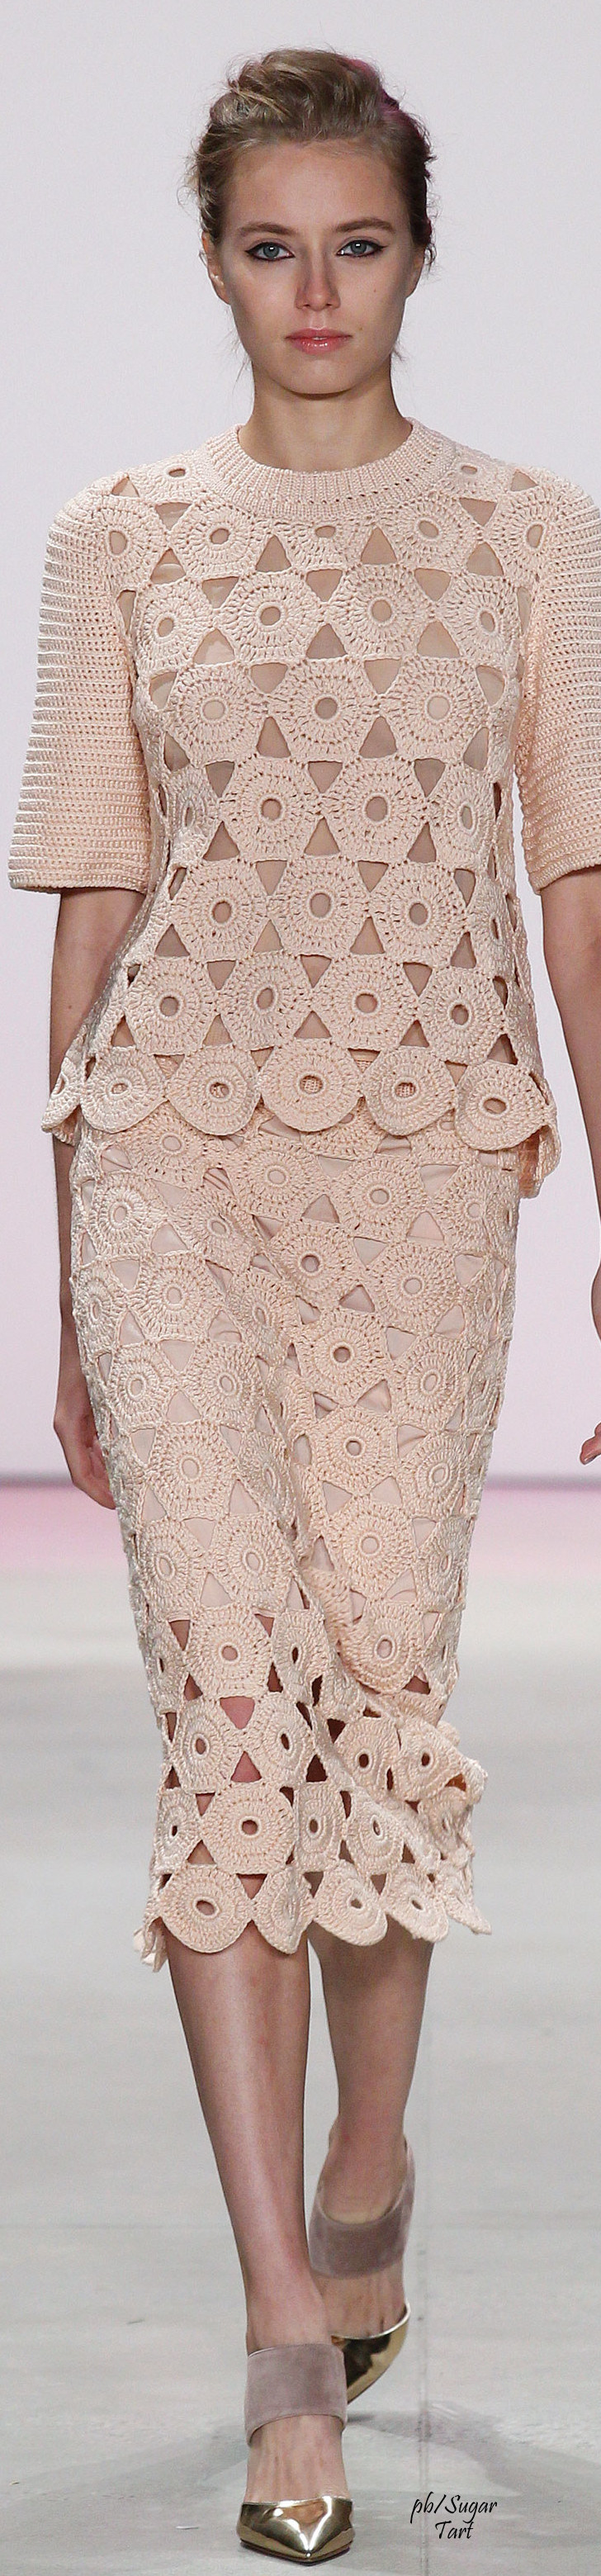 Lela Rose Spring 2016 RTW | Moda en general (2) | Pinterest ...